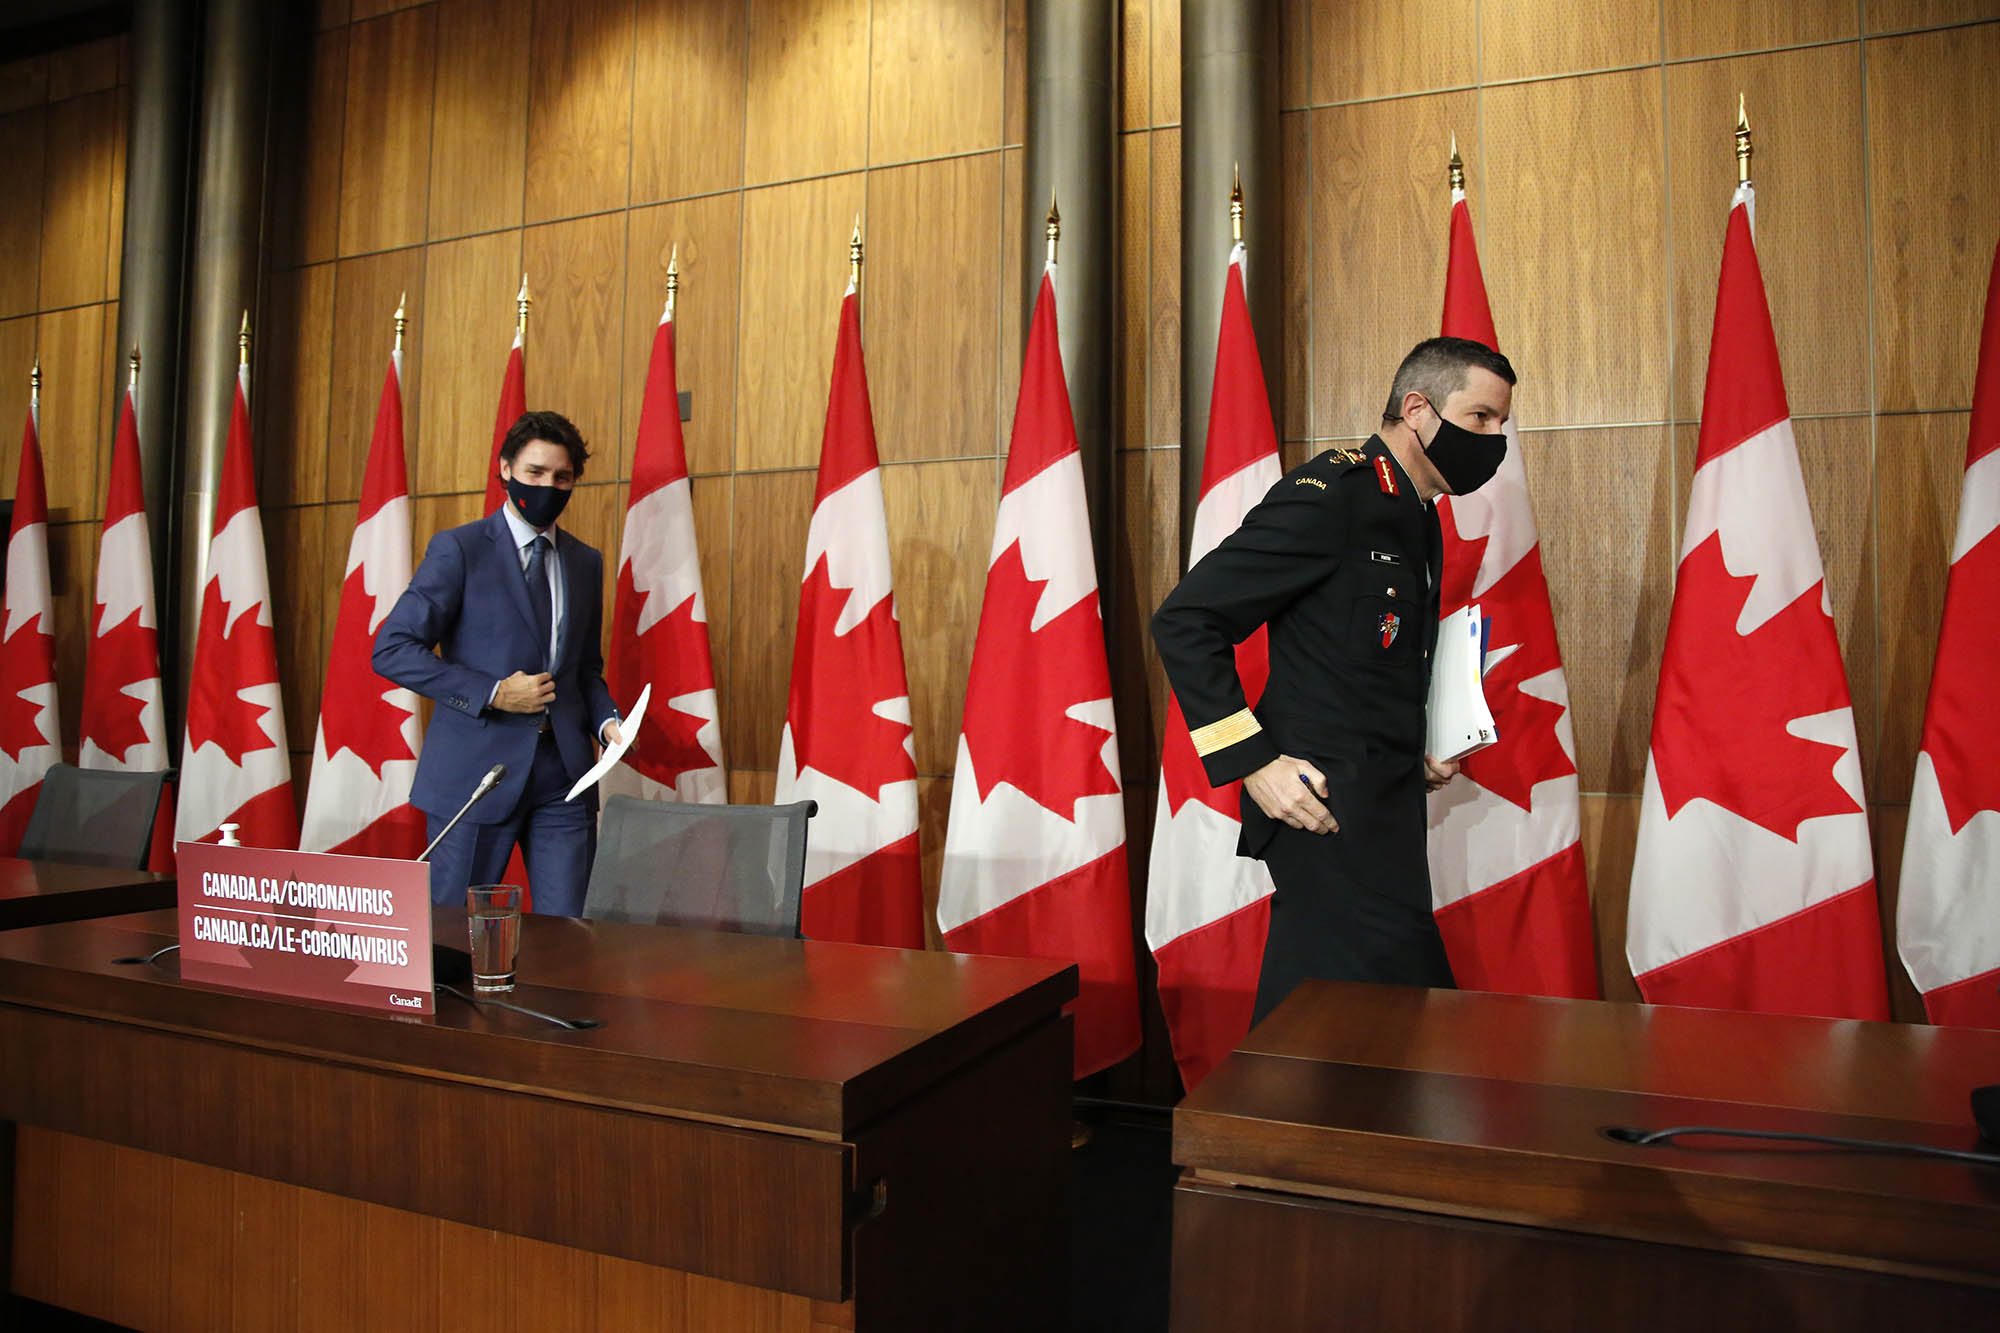 Canada prime minister Justin Trudeau, left, and Major General Dany Fortin, vice president of logistics and operations at Public Health Agency of Canada (PHAC), depart following a news conference in Ottawa, Ontario, Canada, on Thursday, December 10.